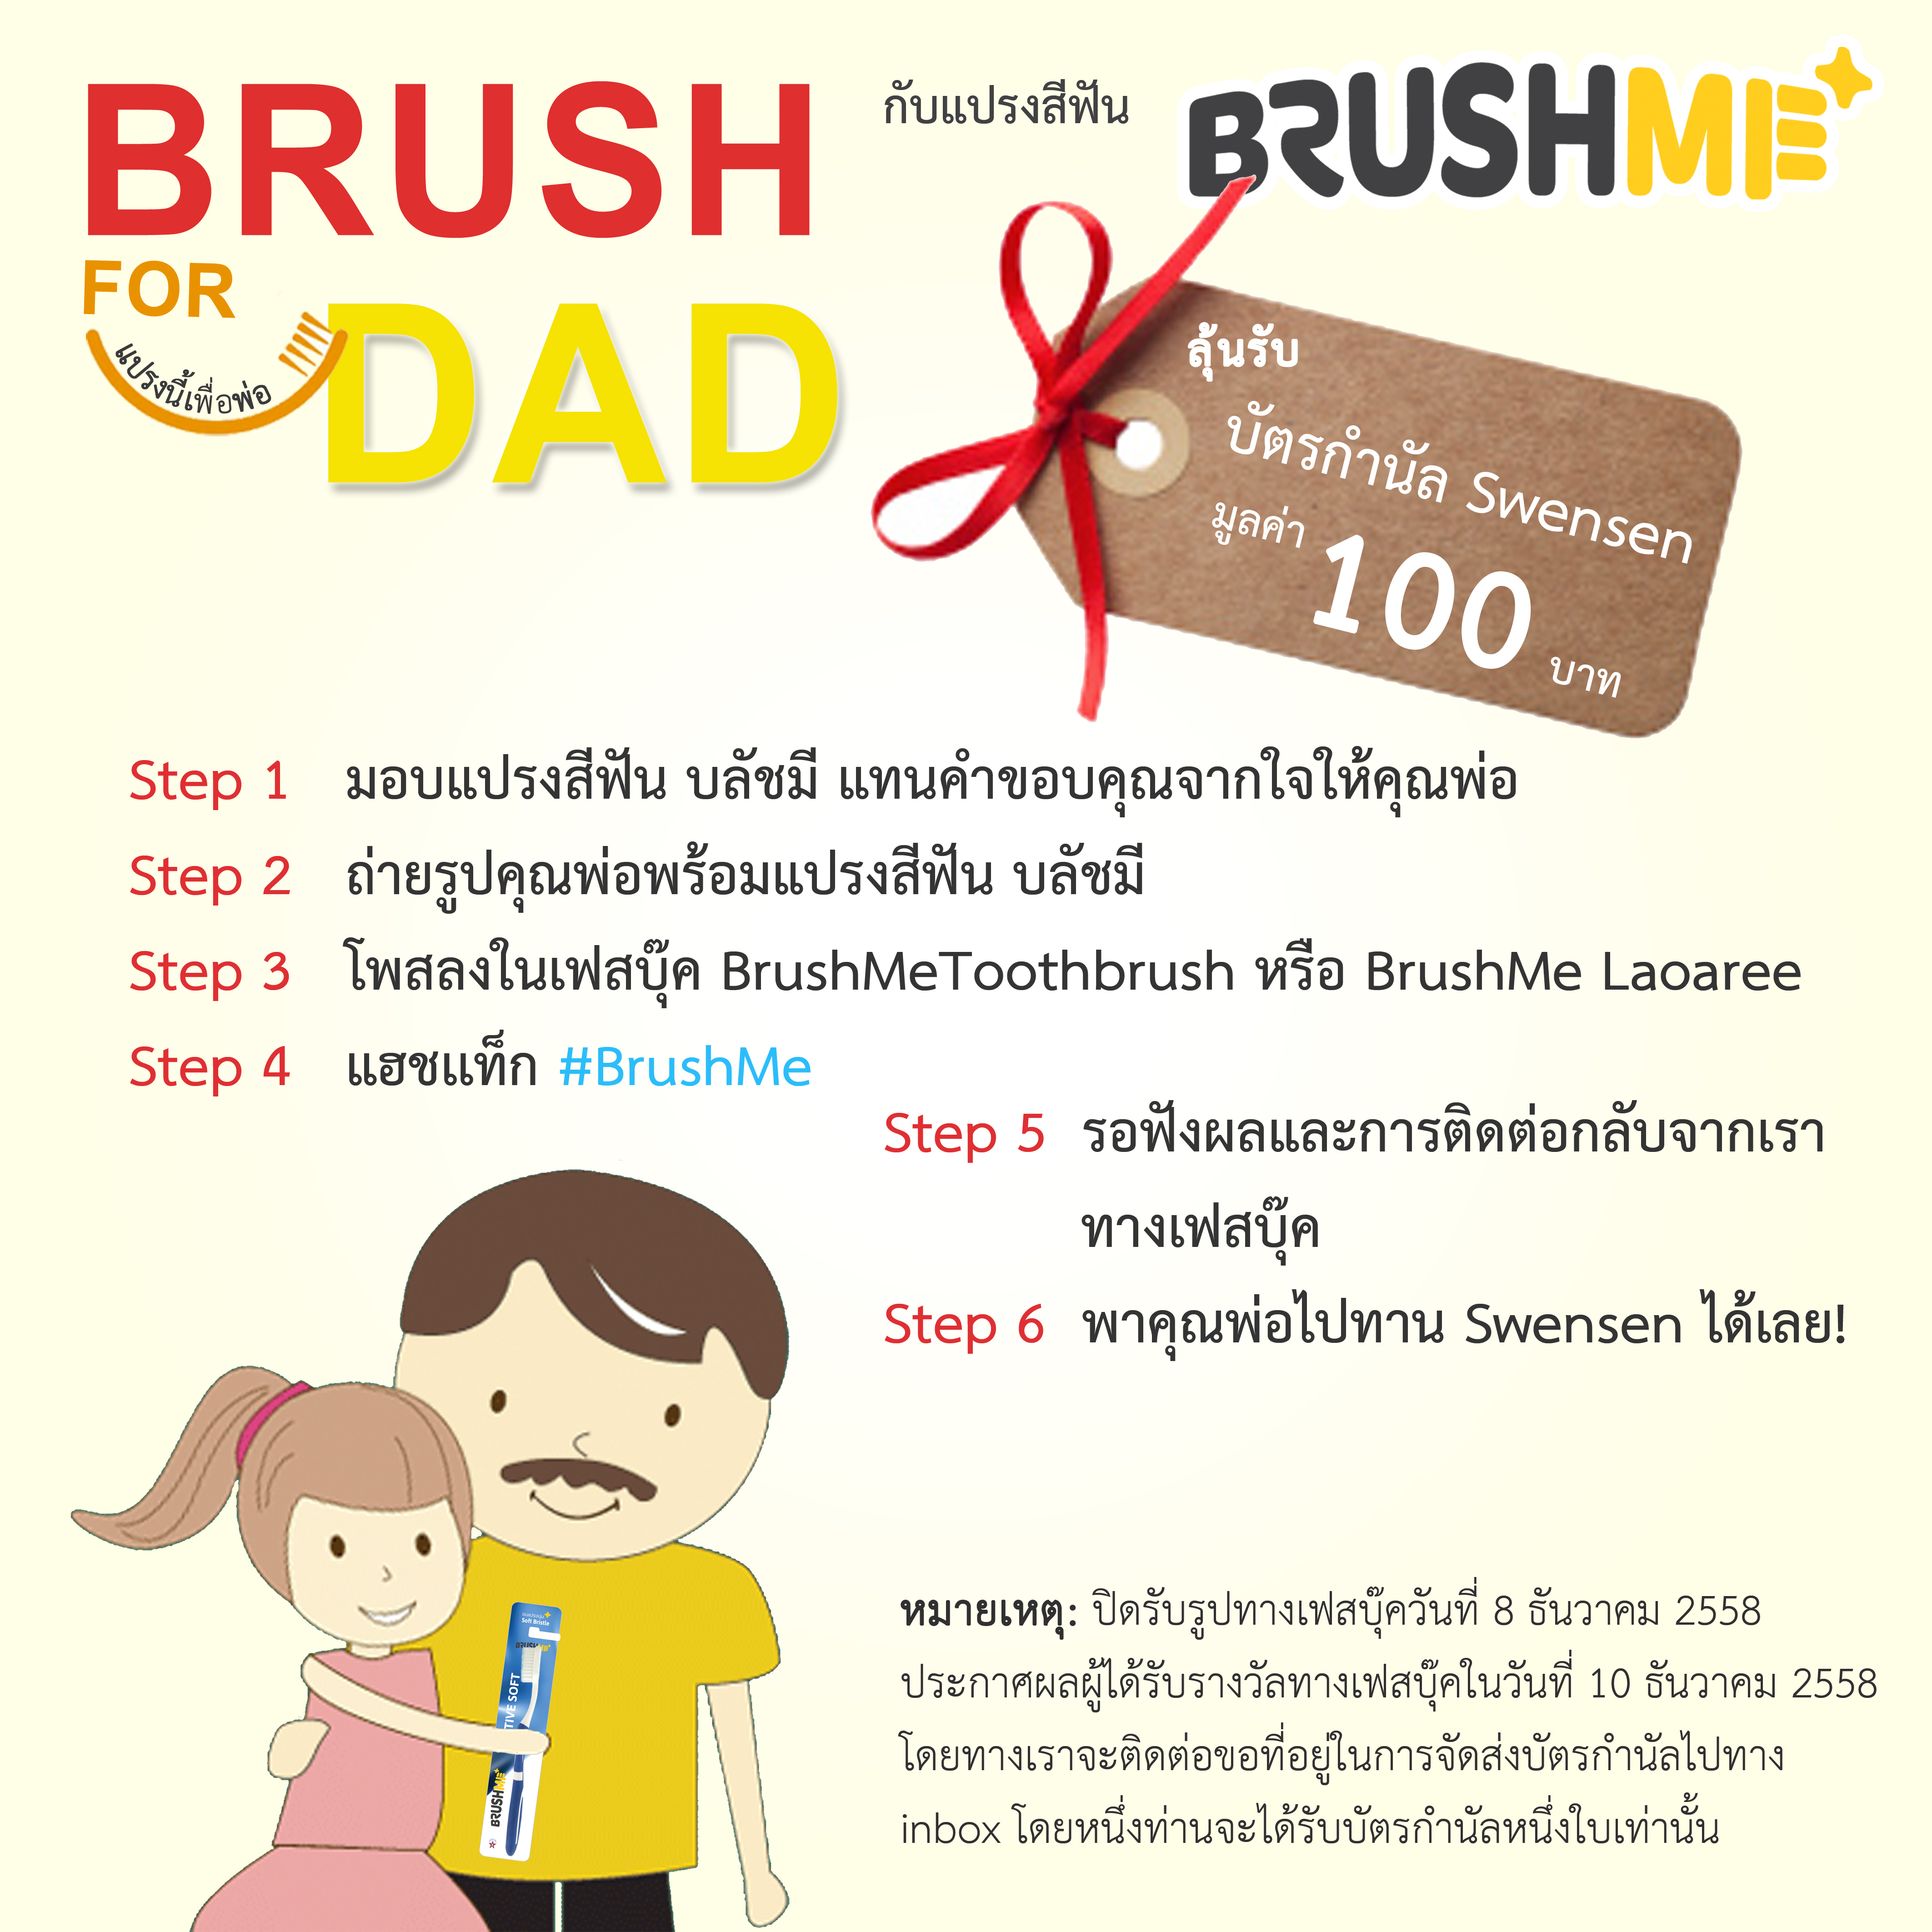 brush for dad 02